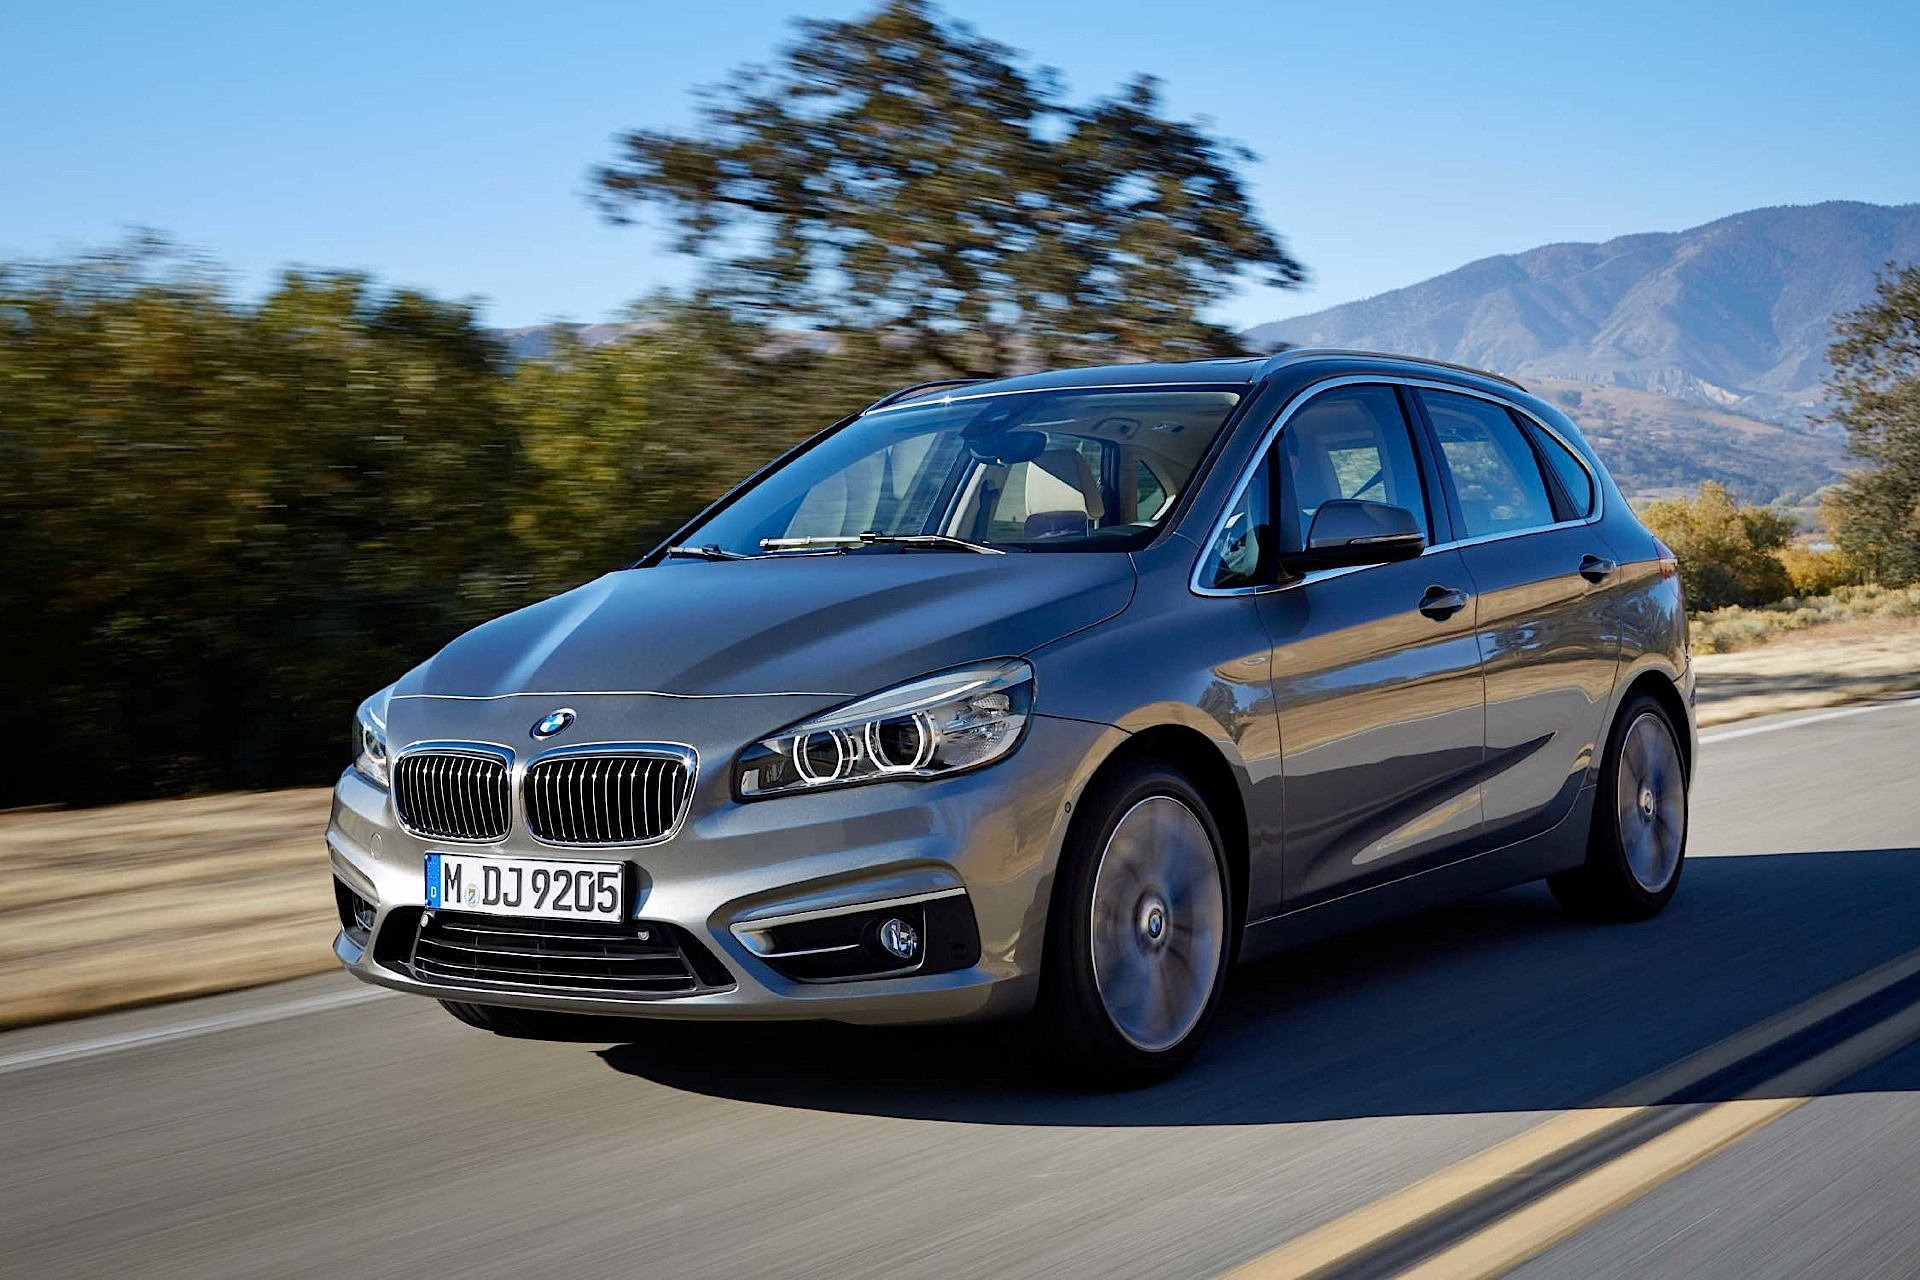 BMW 2 series Active Tourer 216d 2014 photo - 4